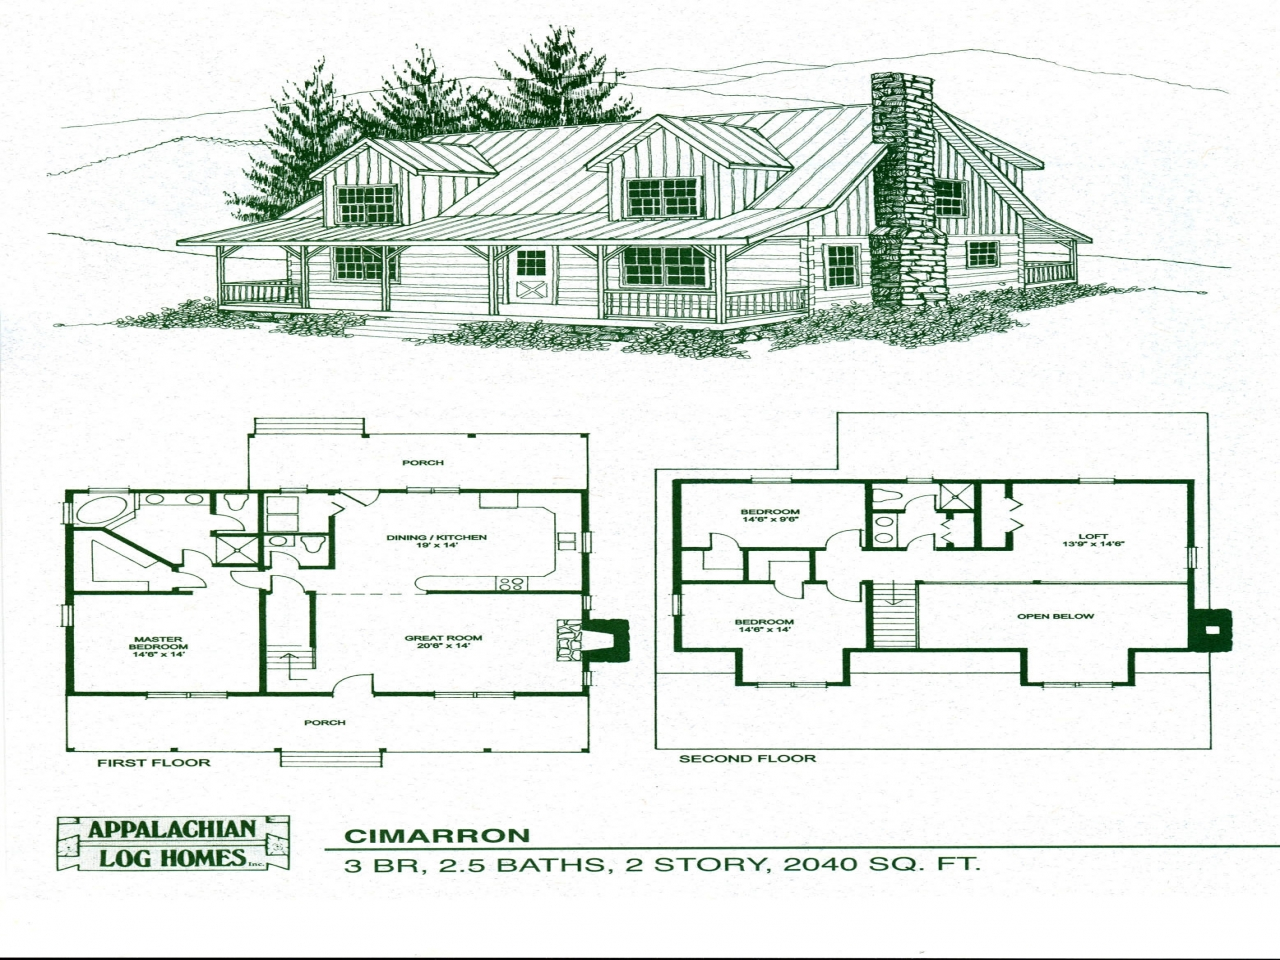 Log cabin kit homes floor plans 2 bedroom log cabin kits for 2 bedroom log cabin plans